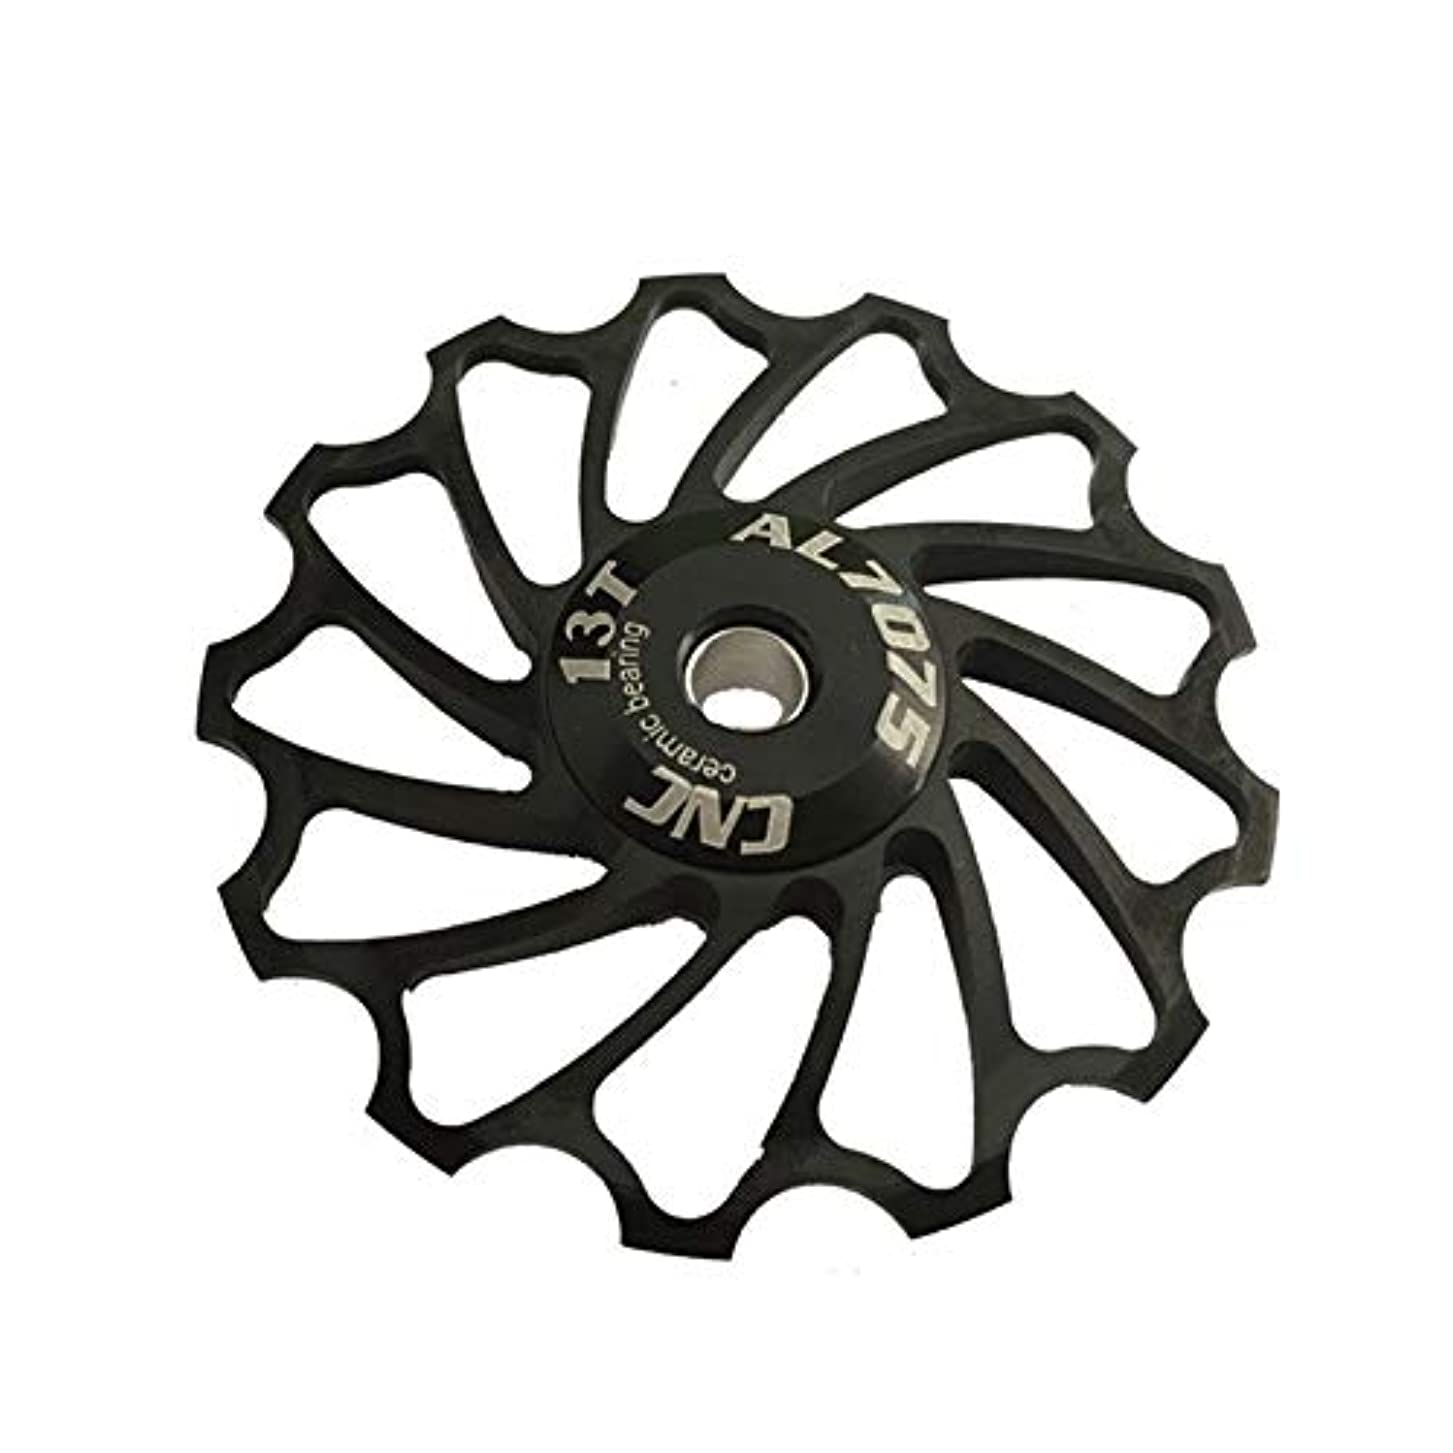 ポーク司書干ばつPropenary - Cycling bike ceramics Jockey Wheel Rear Derailleur Pulley 13T 7075 Aluminum alloy bicycle guide pulley...